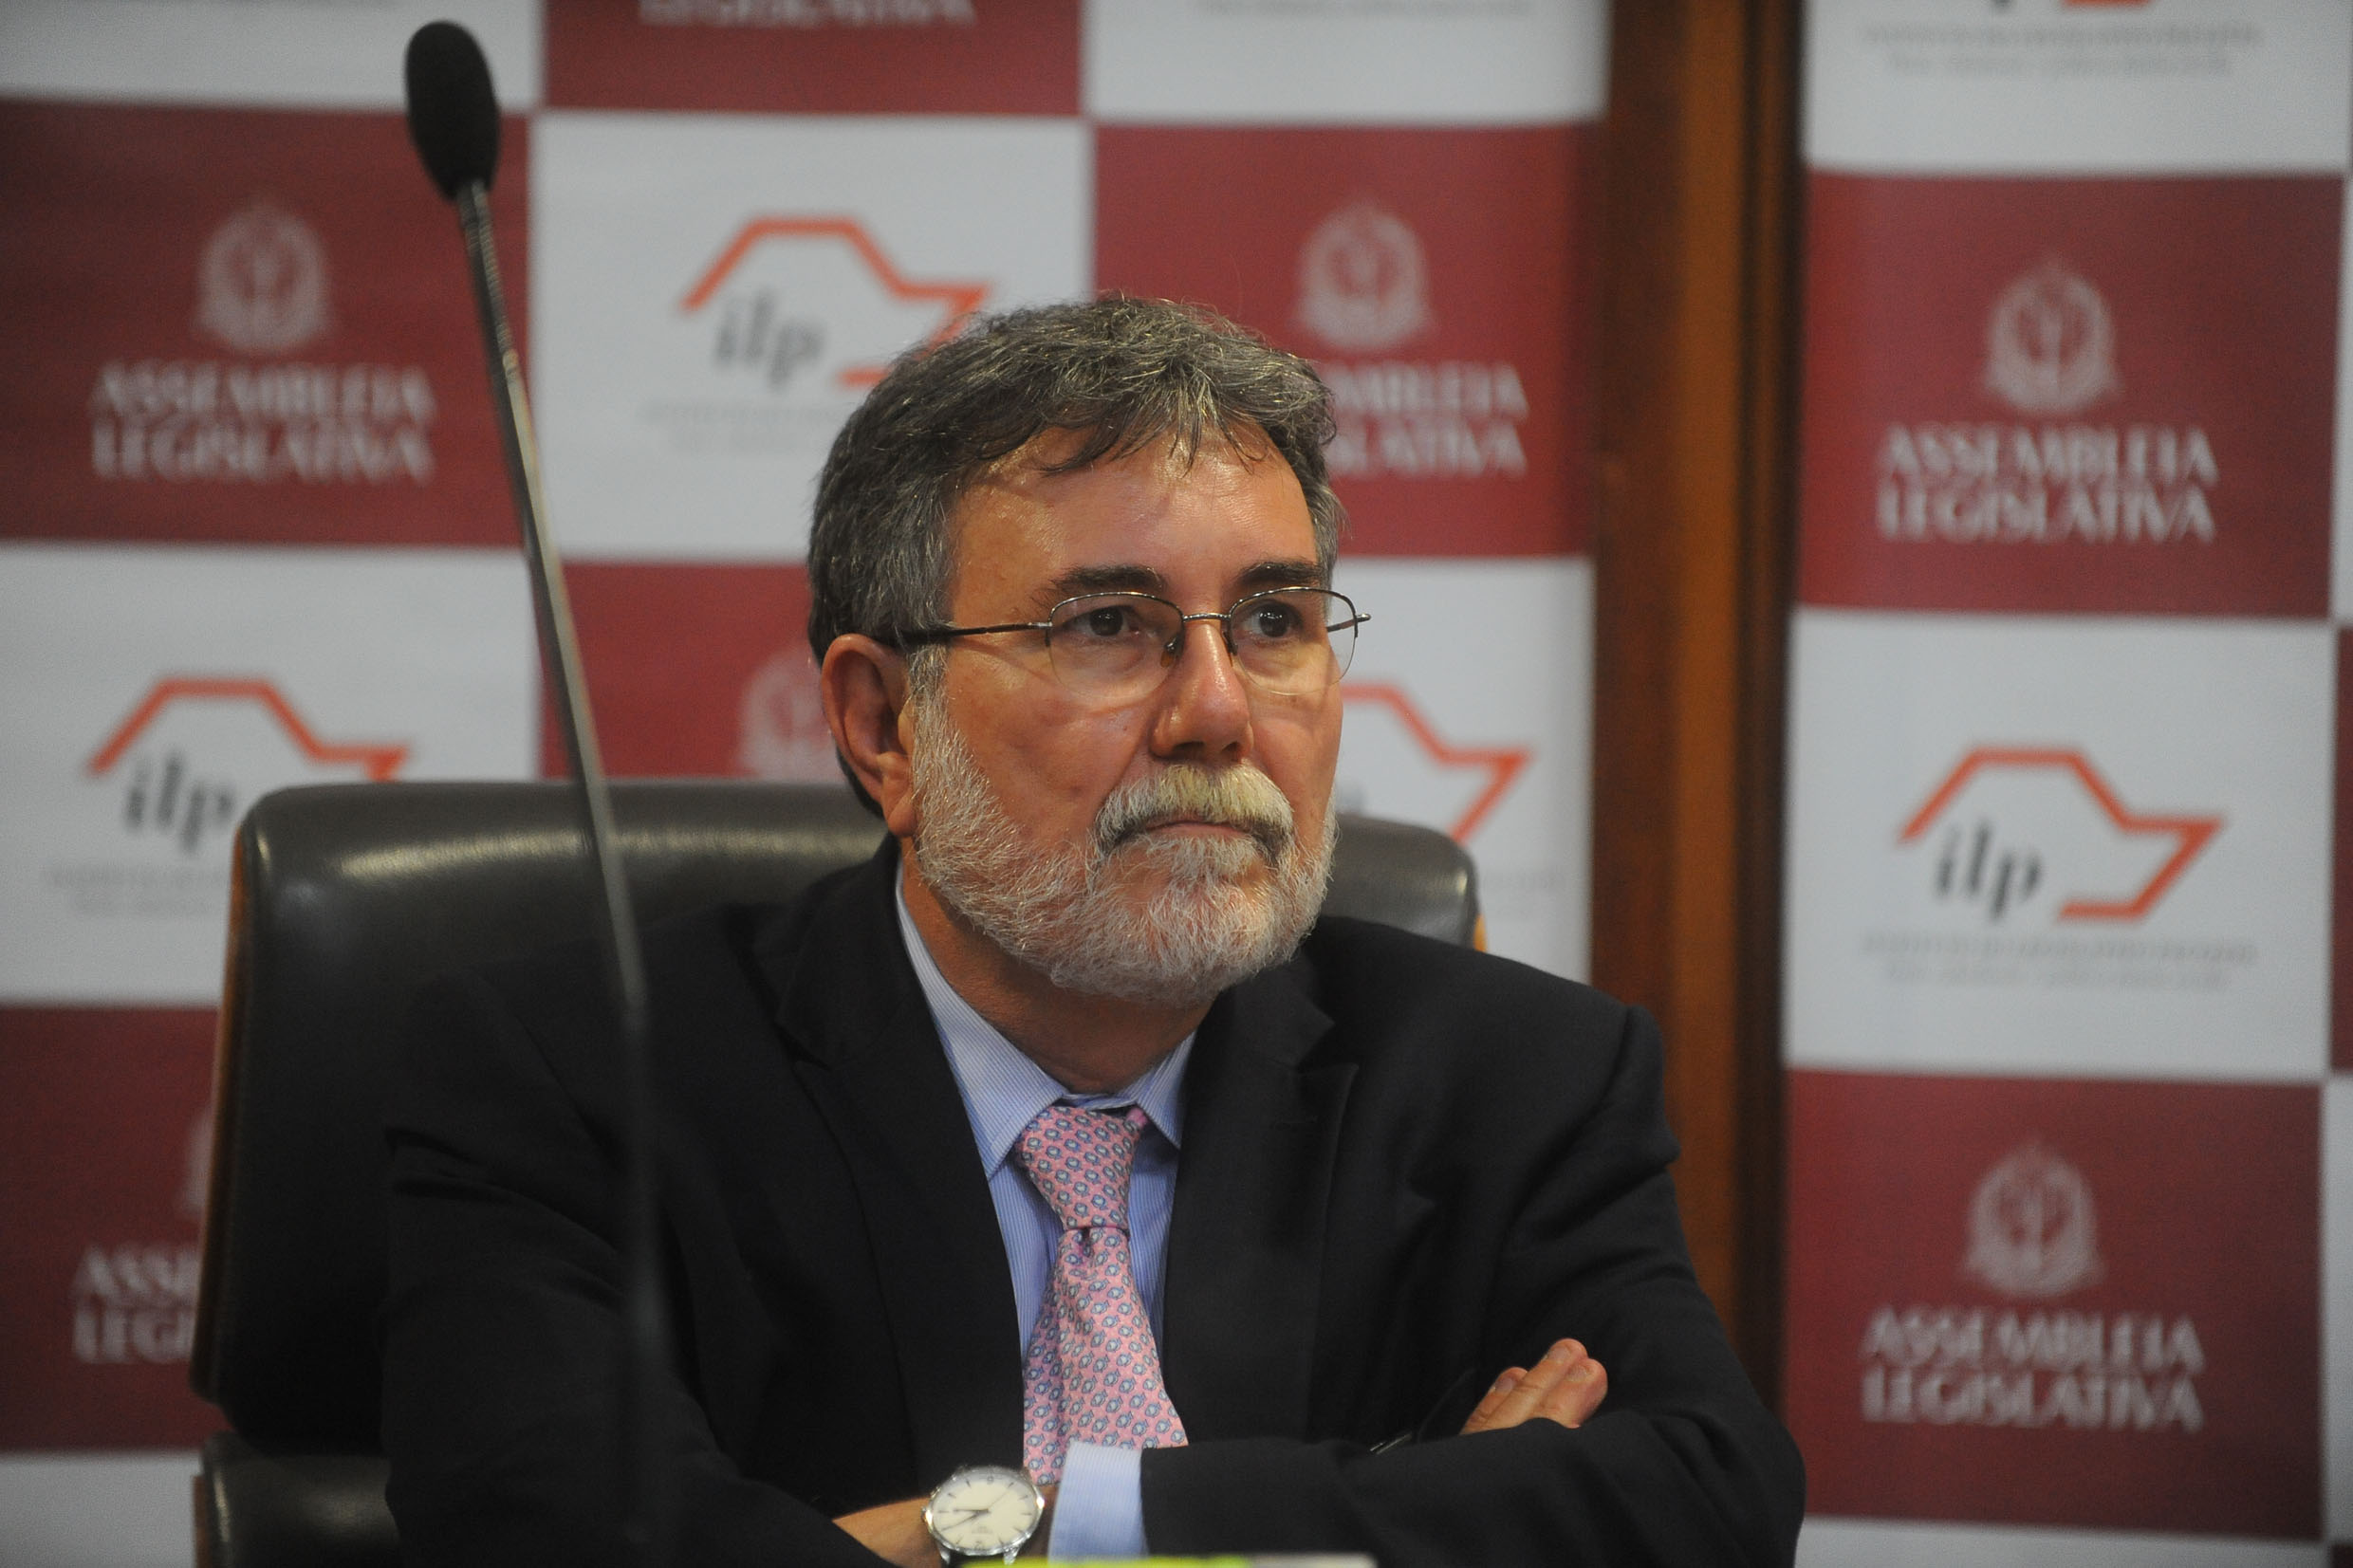 Carlos Américo Pacheco<a style='float:right' href='https://www3.al.sp.gov.br/repositorio/noticia/N-11-2017/fg213494.jpg' target=_blank><img src='/_img/material-file-download-white.png' width='14px' alt='Clique para baixar a imagem'></a>